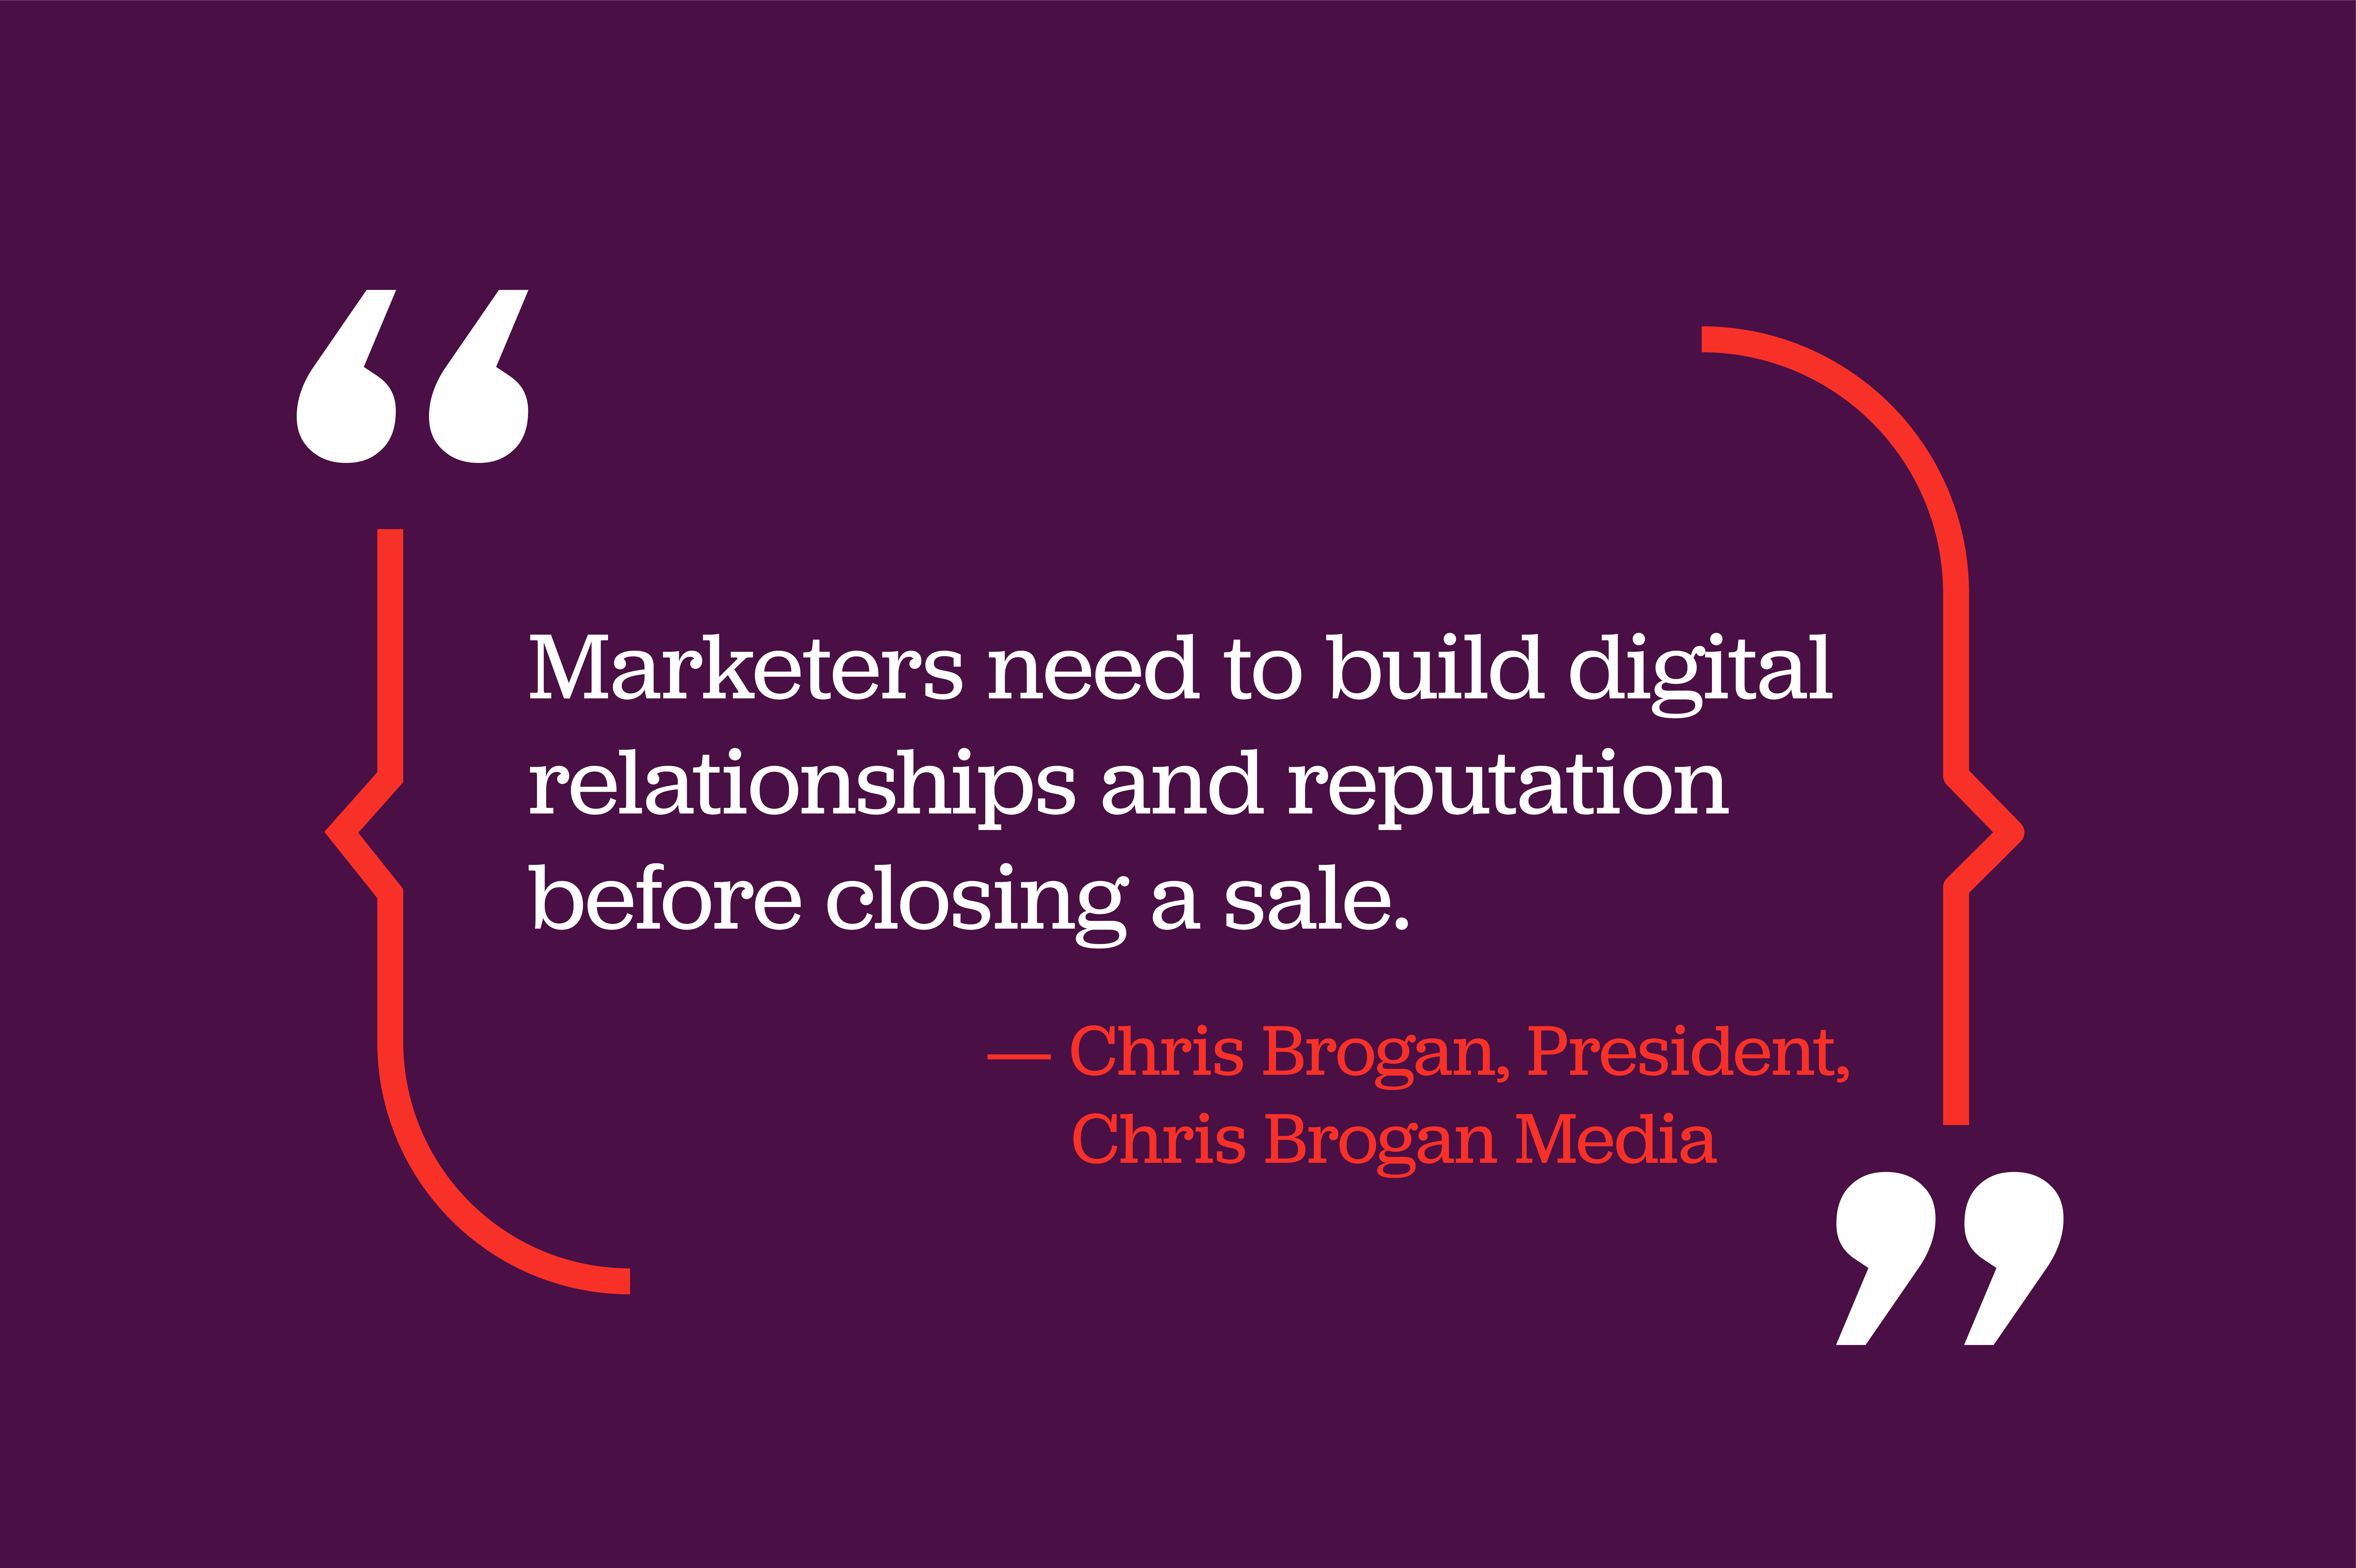 Marketers need to build digital relationships and reputation before closing a sale. - Chris Brogan